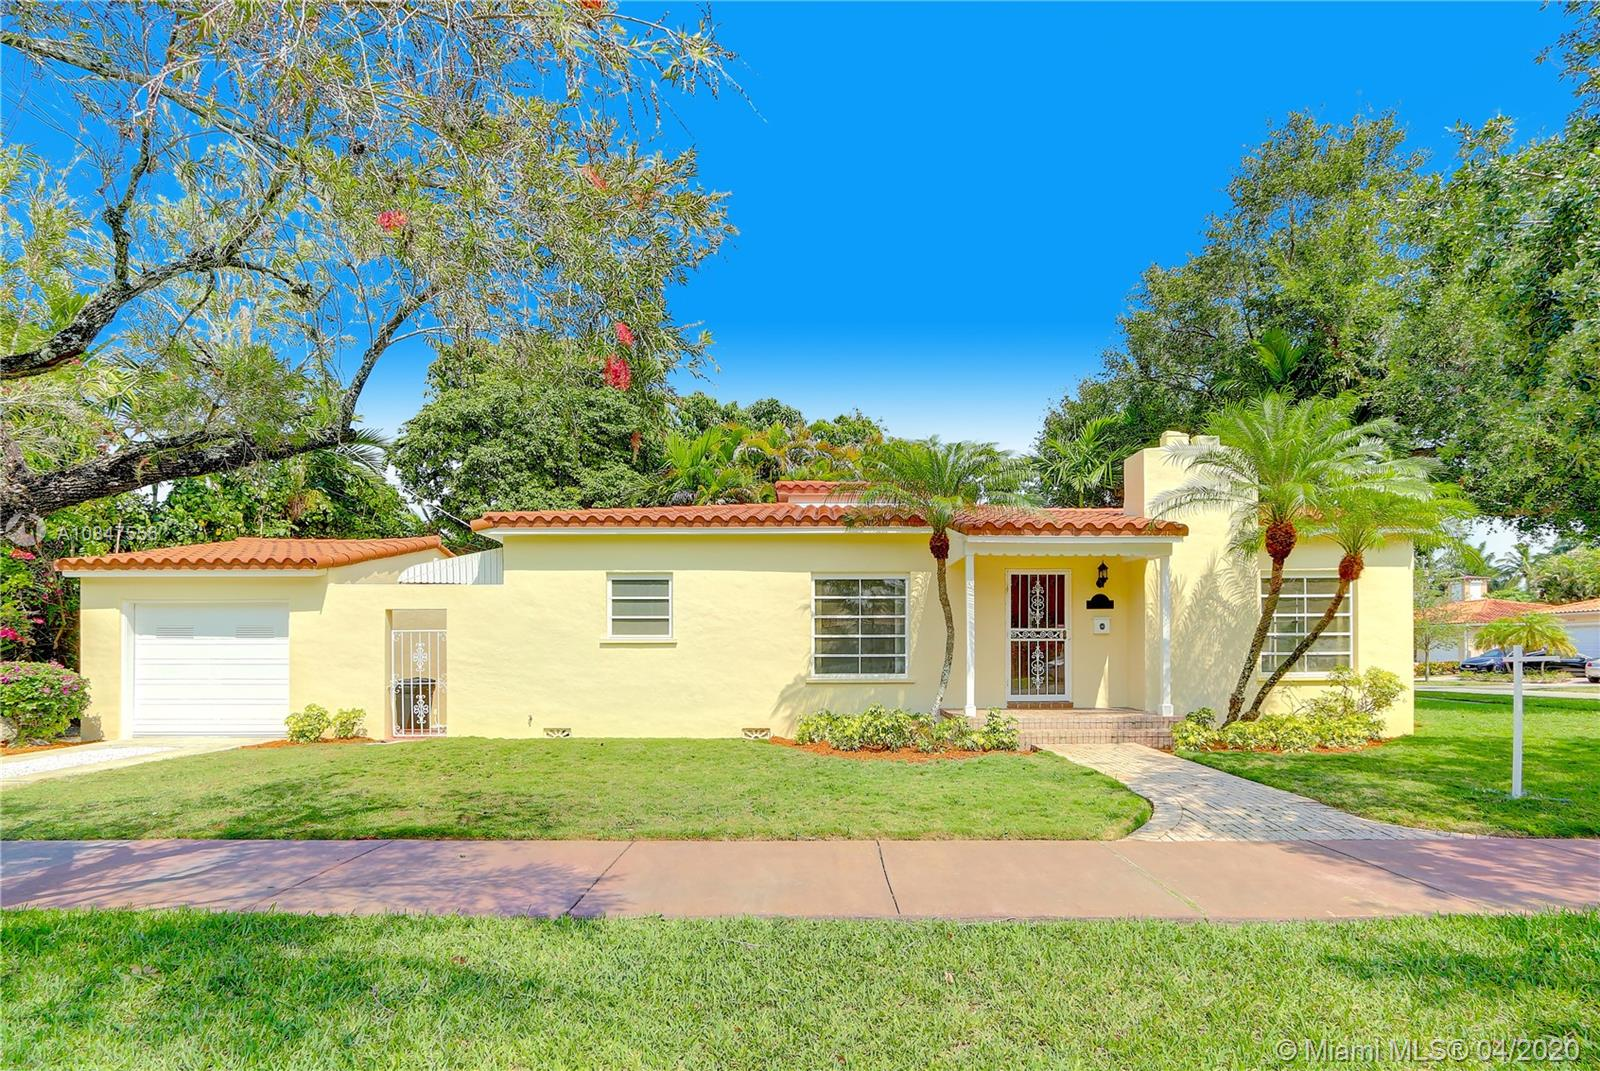 3513  Salzedo St.  For Sale A10847556, FL